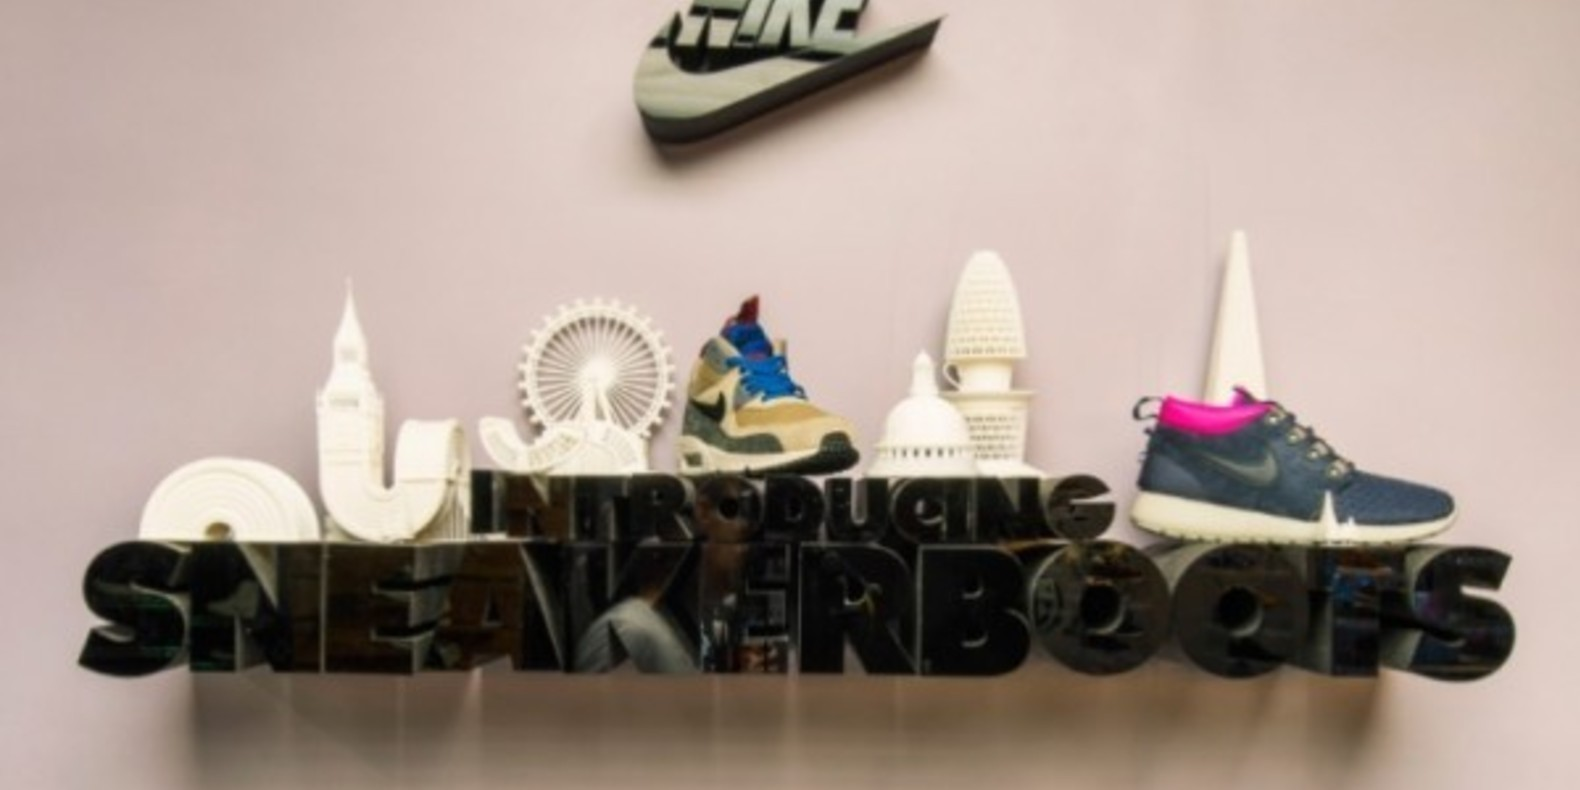 Nike prints in 3D Paris and London